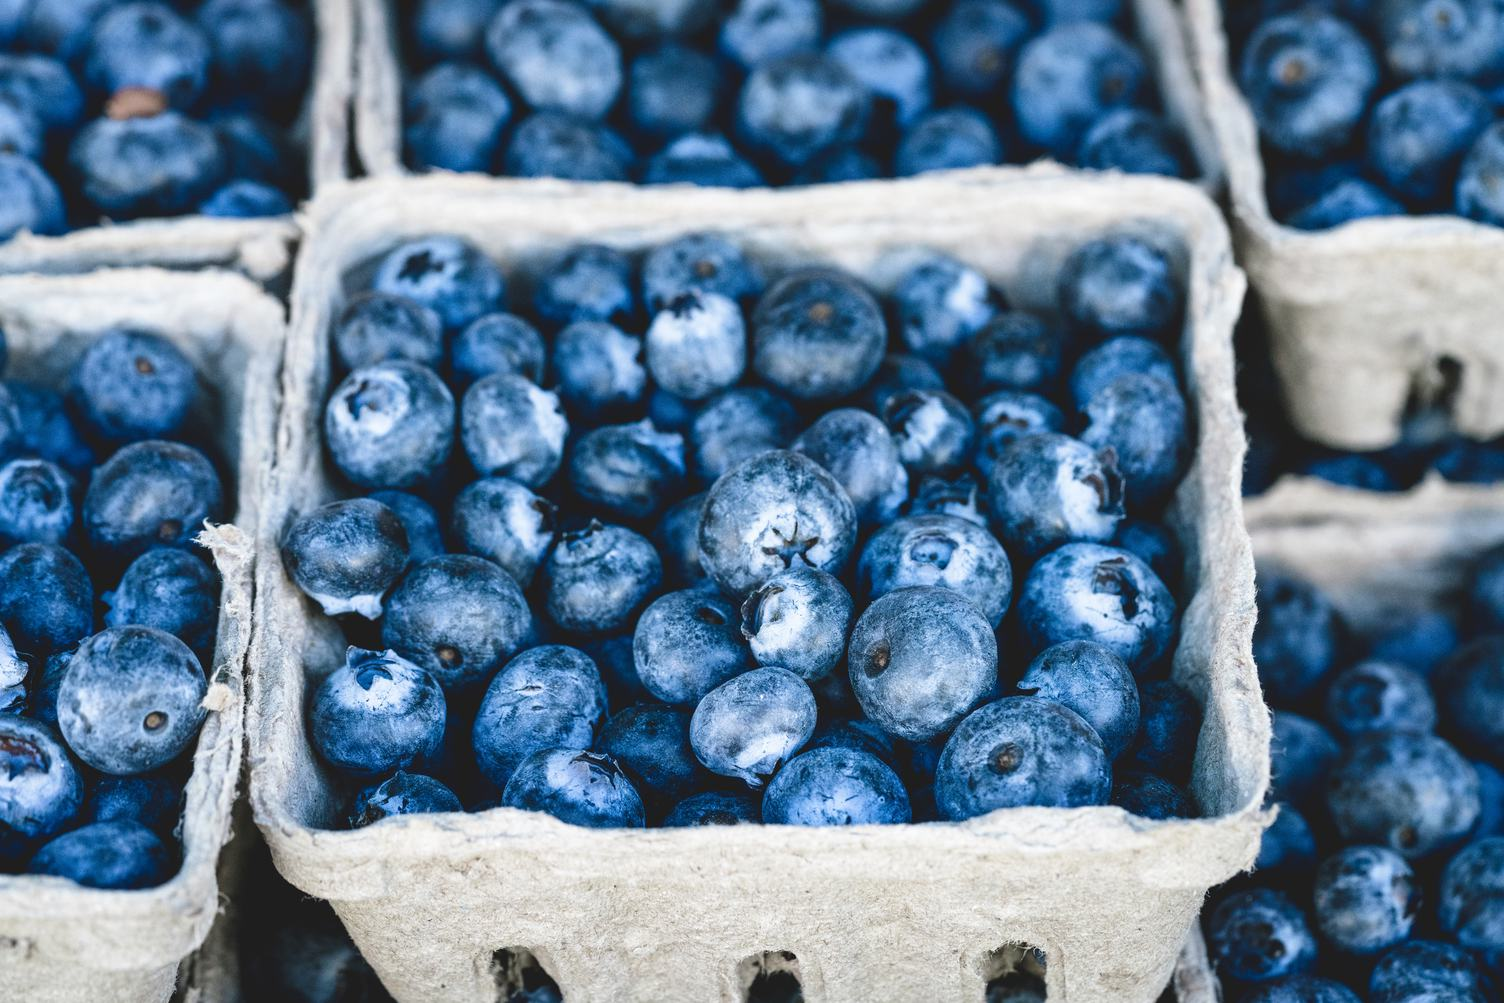 Blueberries in Carton Boxes